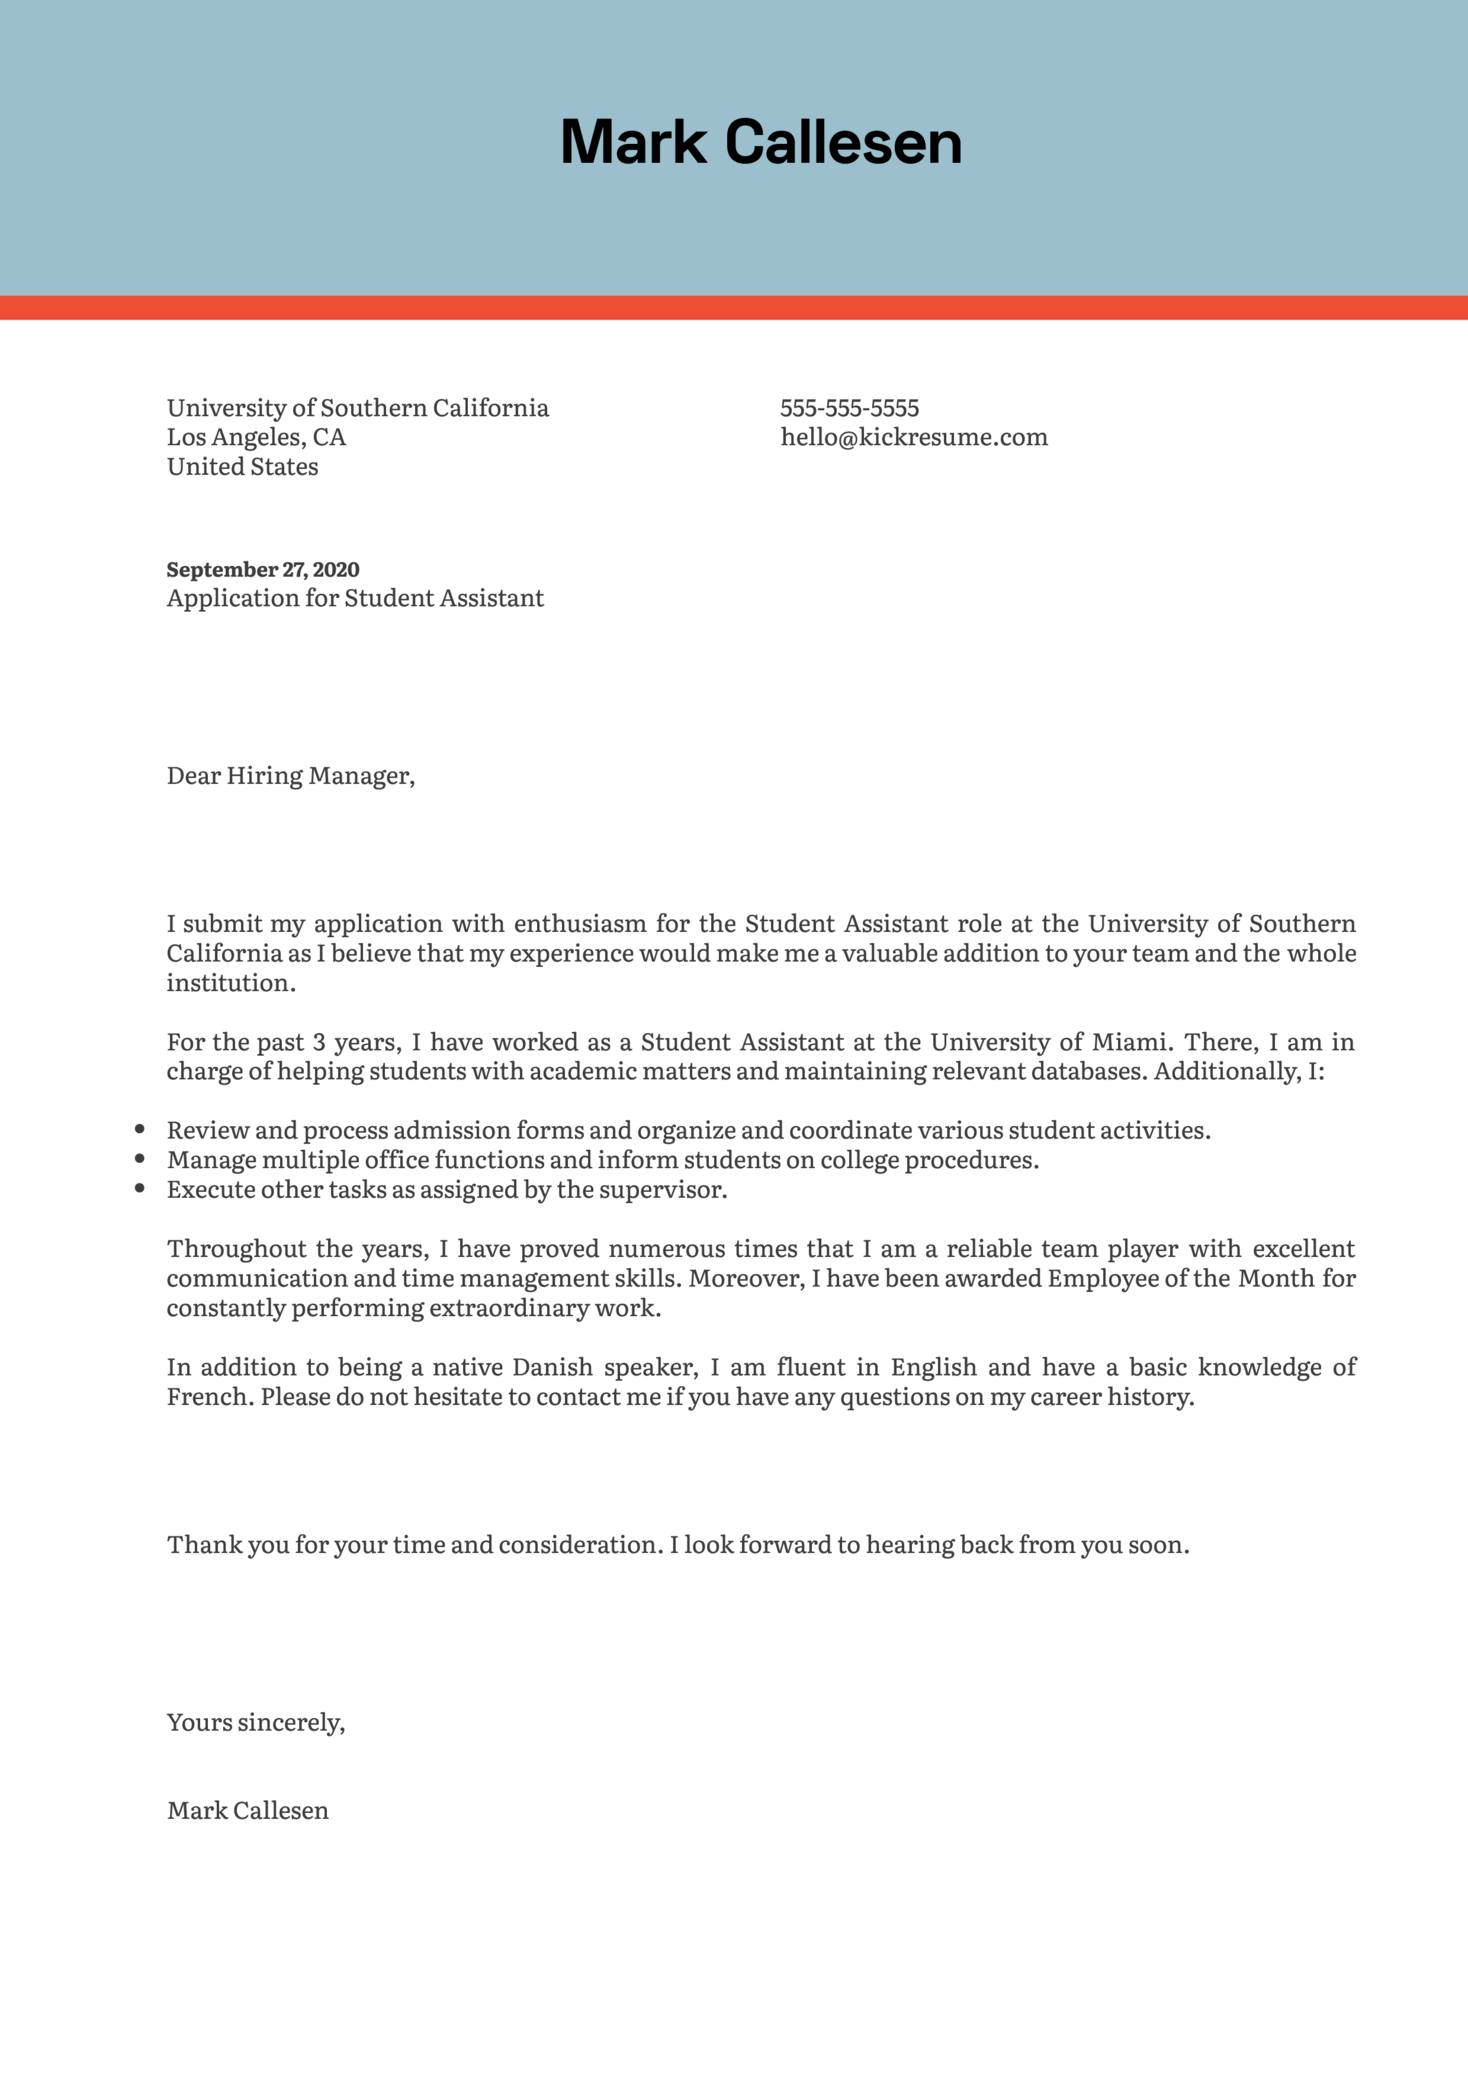 Student Assistant Cover Letter Example